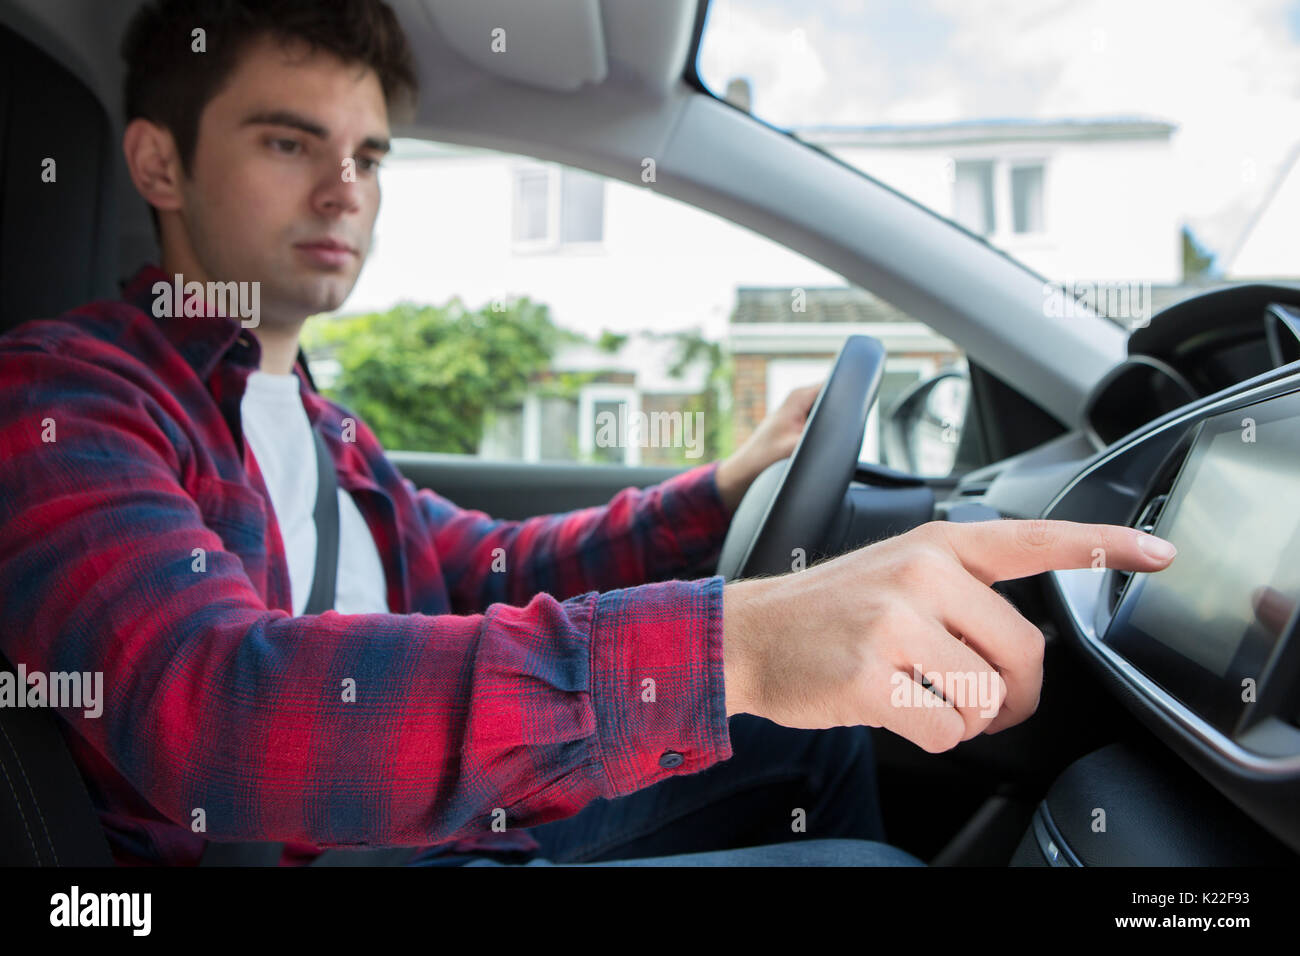 Male Driver Using Touchscreen In Car - Stock Image